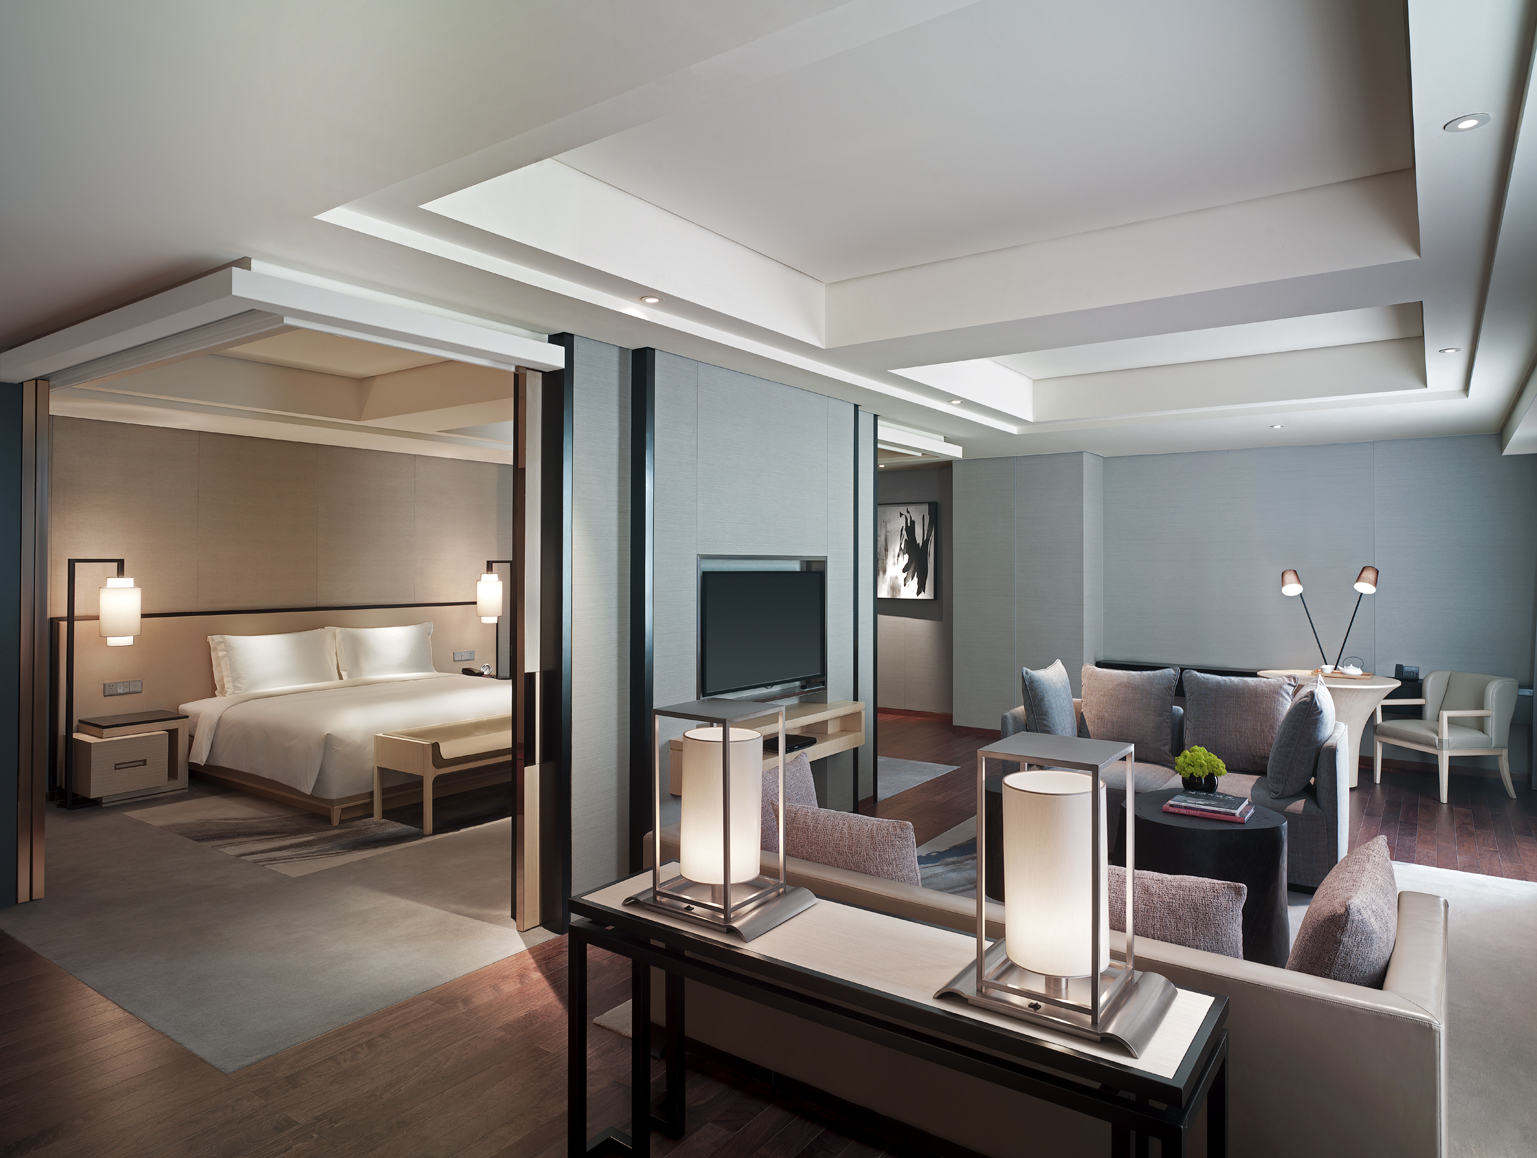 New world beijing hotel prepares for double eleven flash for Best hotel design 2016